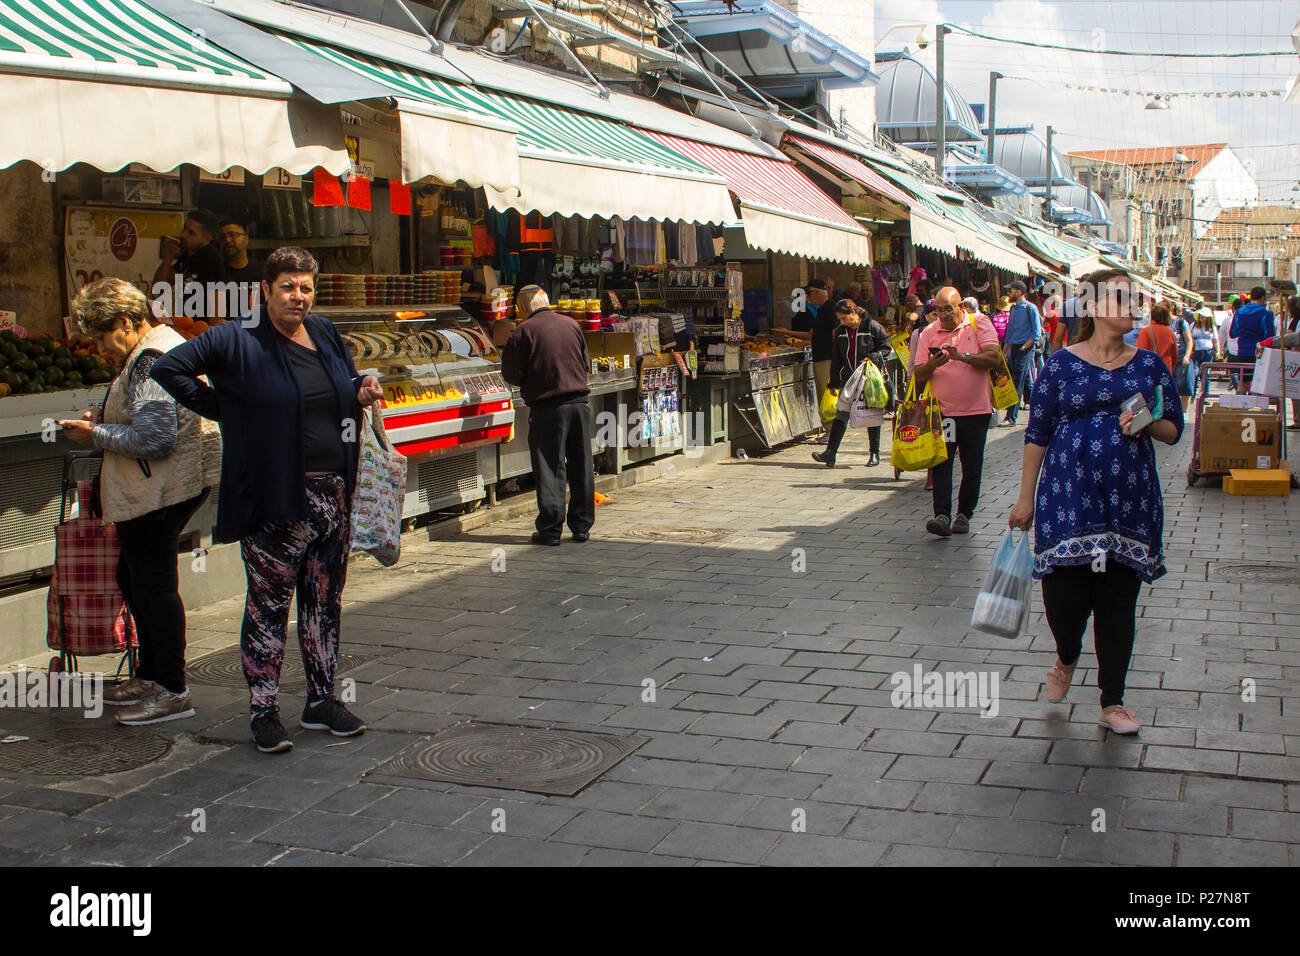 9 May 2018 Shoppers with their bags at the busy Mahane Yehuda street market in Jeruslaem Israel - Stock Image